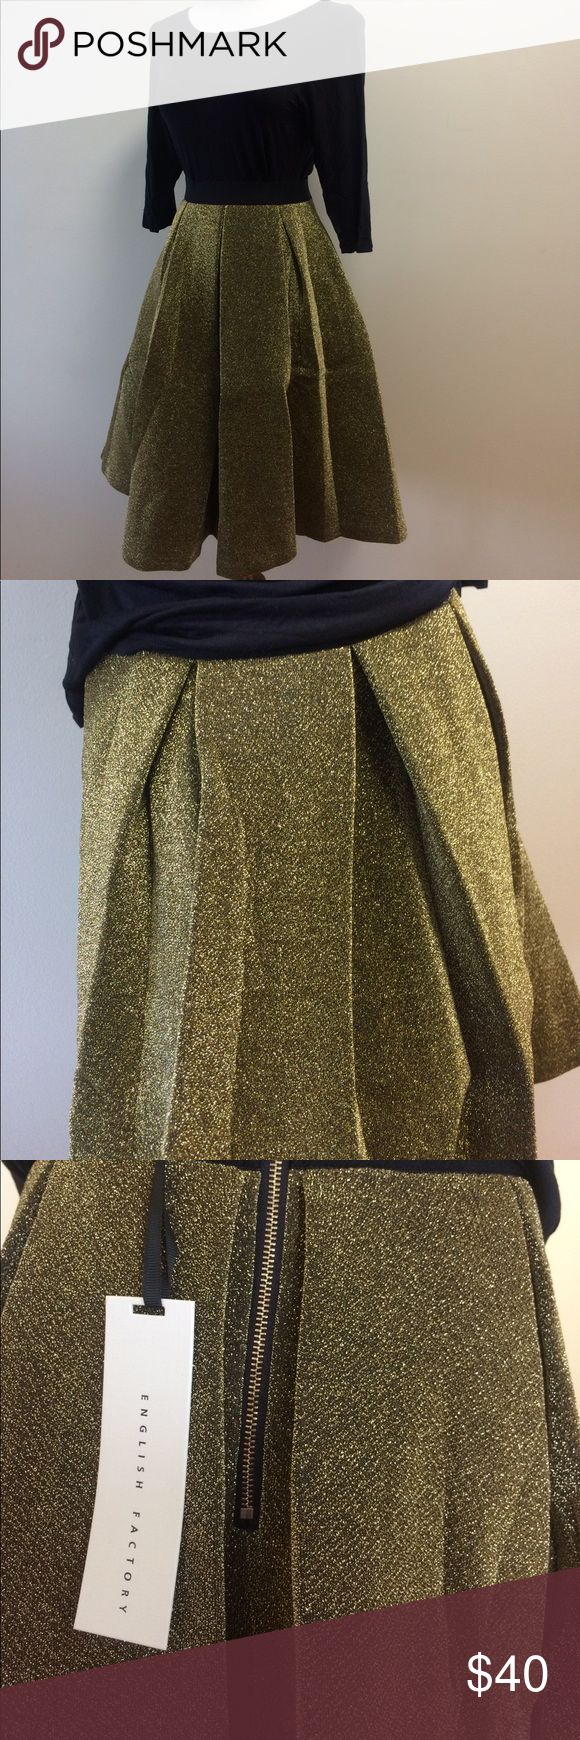 Metallic Gold Thread Holiday Circle Skirt Retro Gorgeous FULL circle skirt with metallic gold thread. No glitter falling off while you dance the night away. Fabric similar to neoprene, waistband stretchy (Small is on typical  medium size 6 mannequin.) back zipper. Large missing tag. Made  by English Factory sold on Unique Vintage and other similar sites.  💖 I consider ALL offers 💖 Skirts Circle & Skater